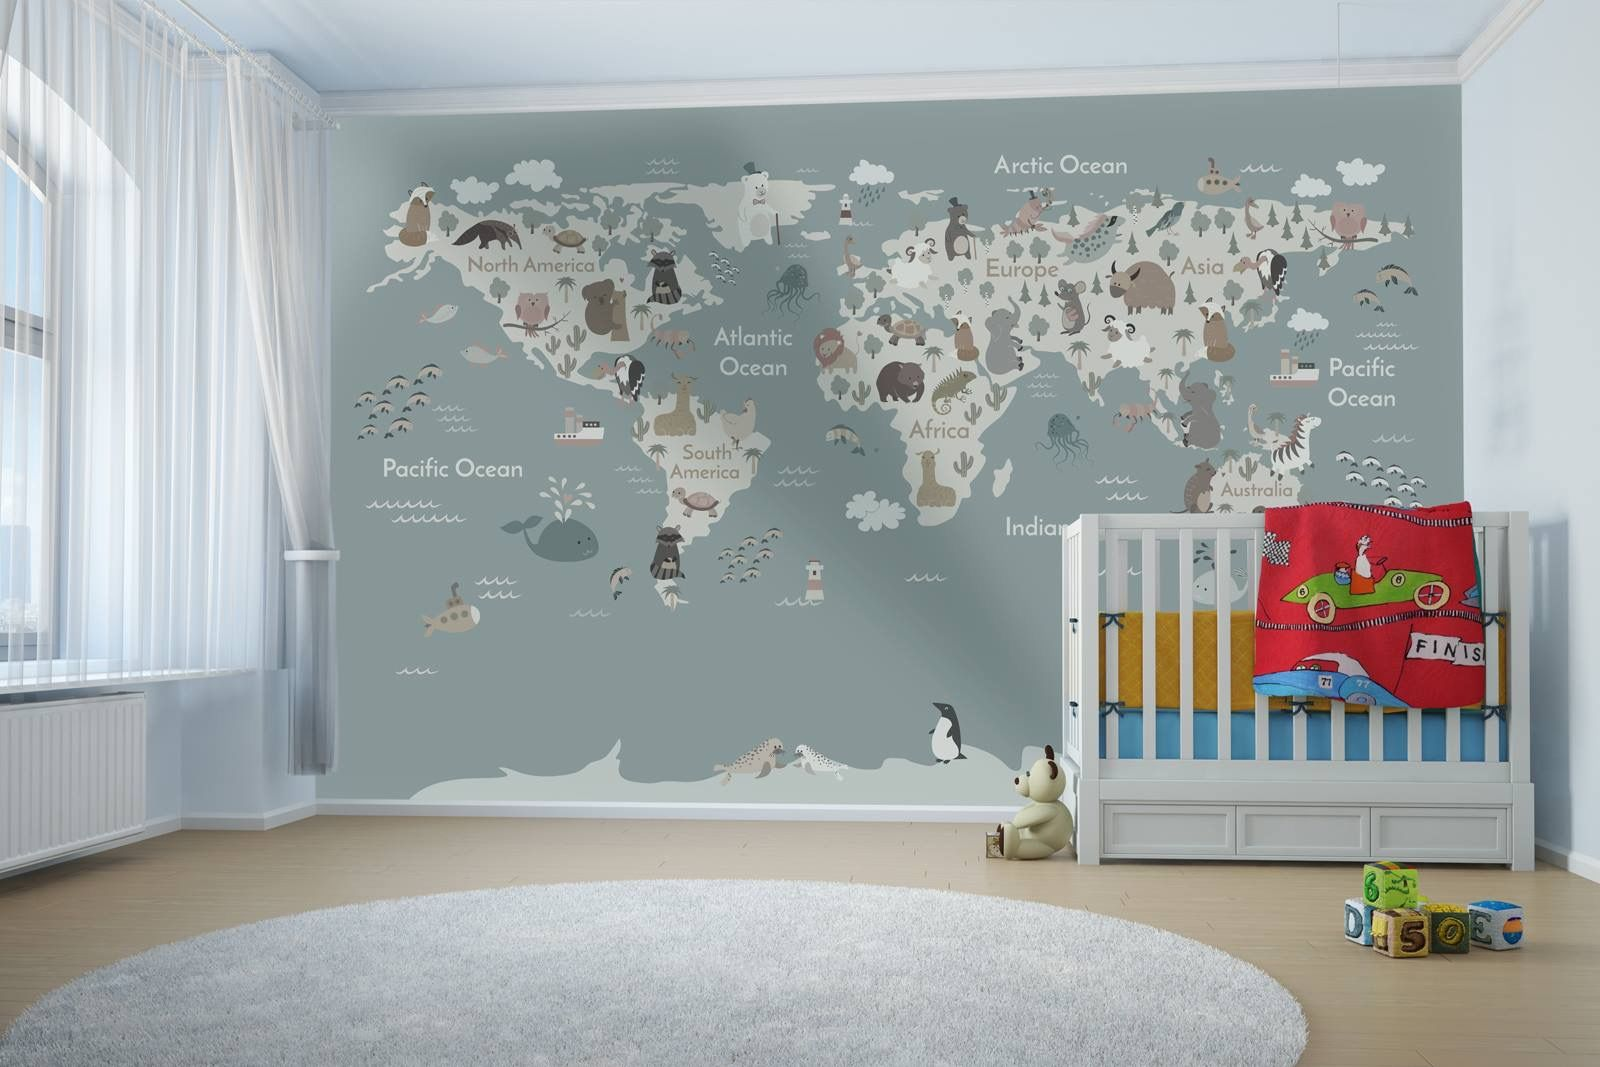 World map removable wallpaper for kids bedroom decor ideas world map removable wallpaper for kids bedroom decor ideas gumiabroncs Choice Image